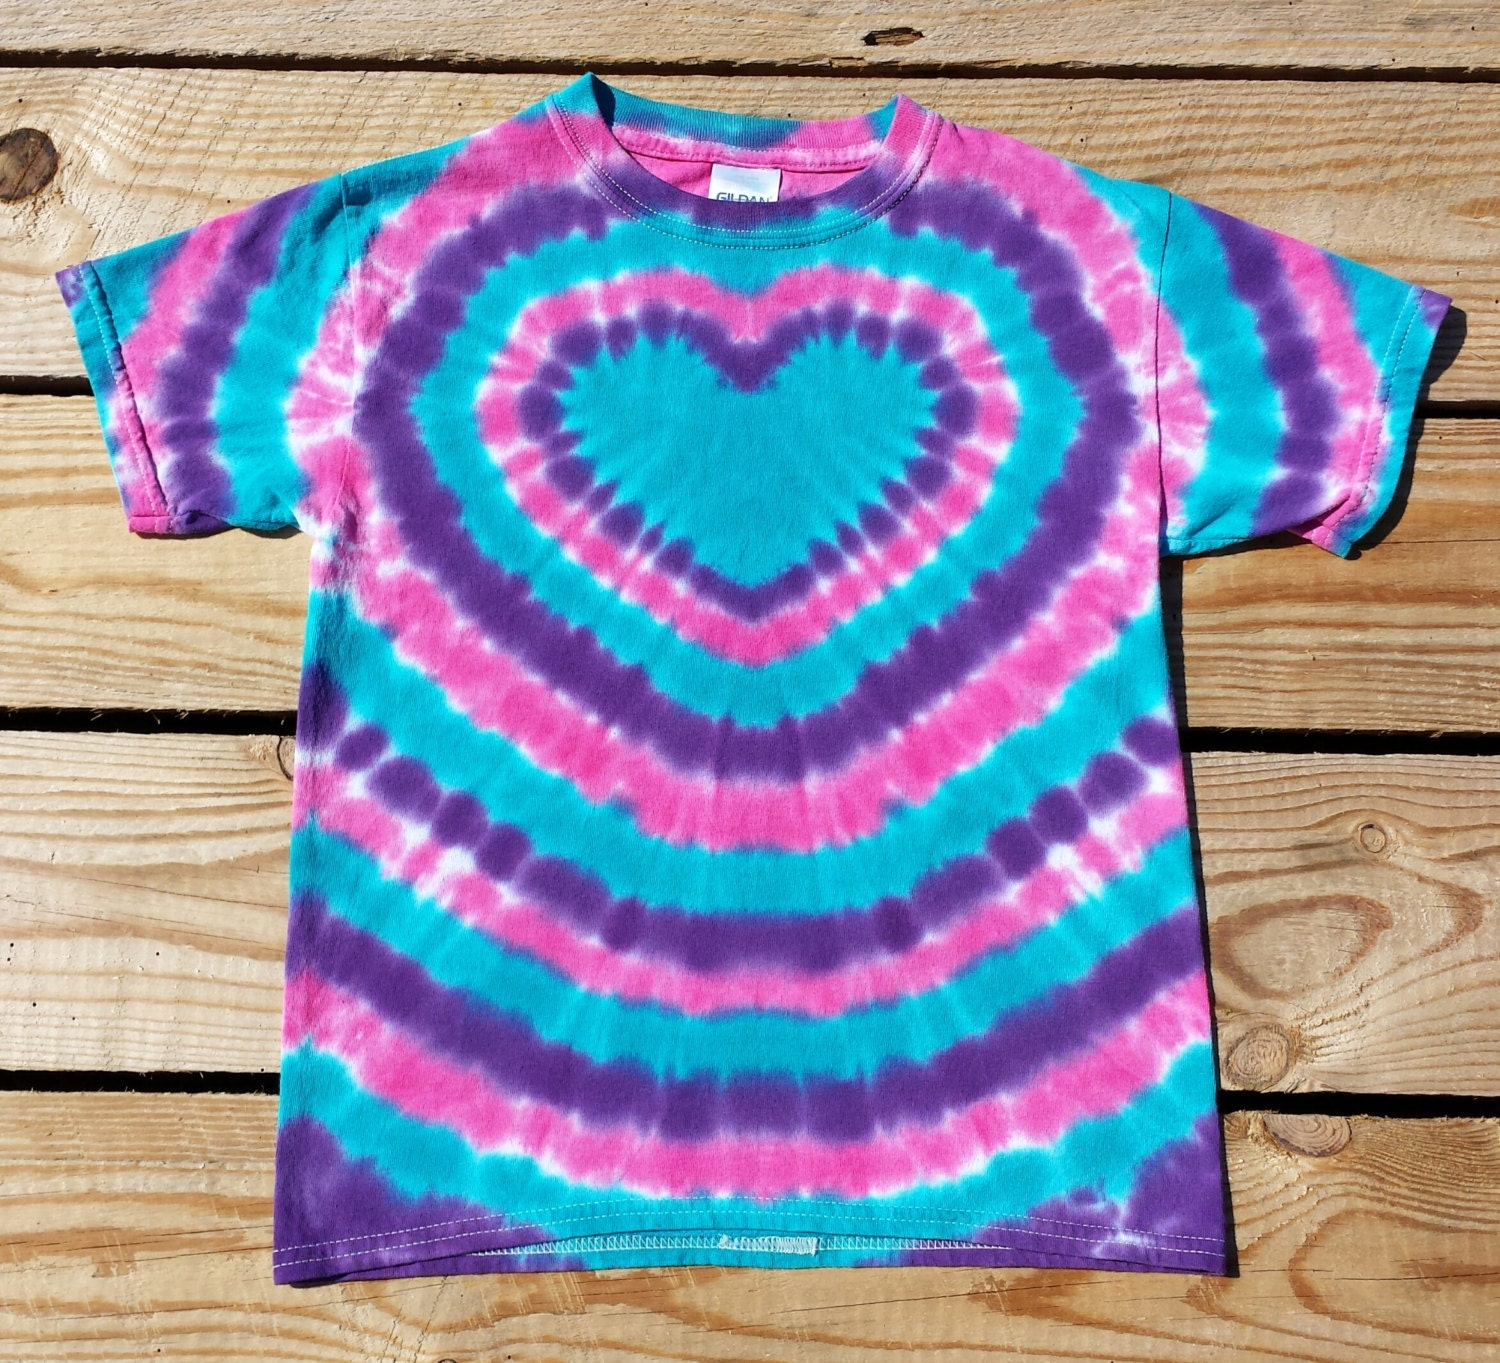 how to make tie dye shirt with a heart